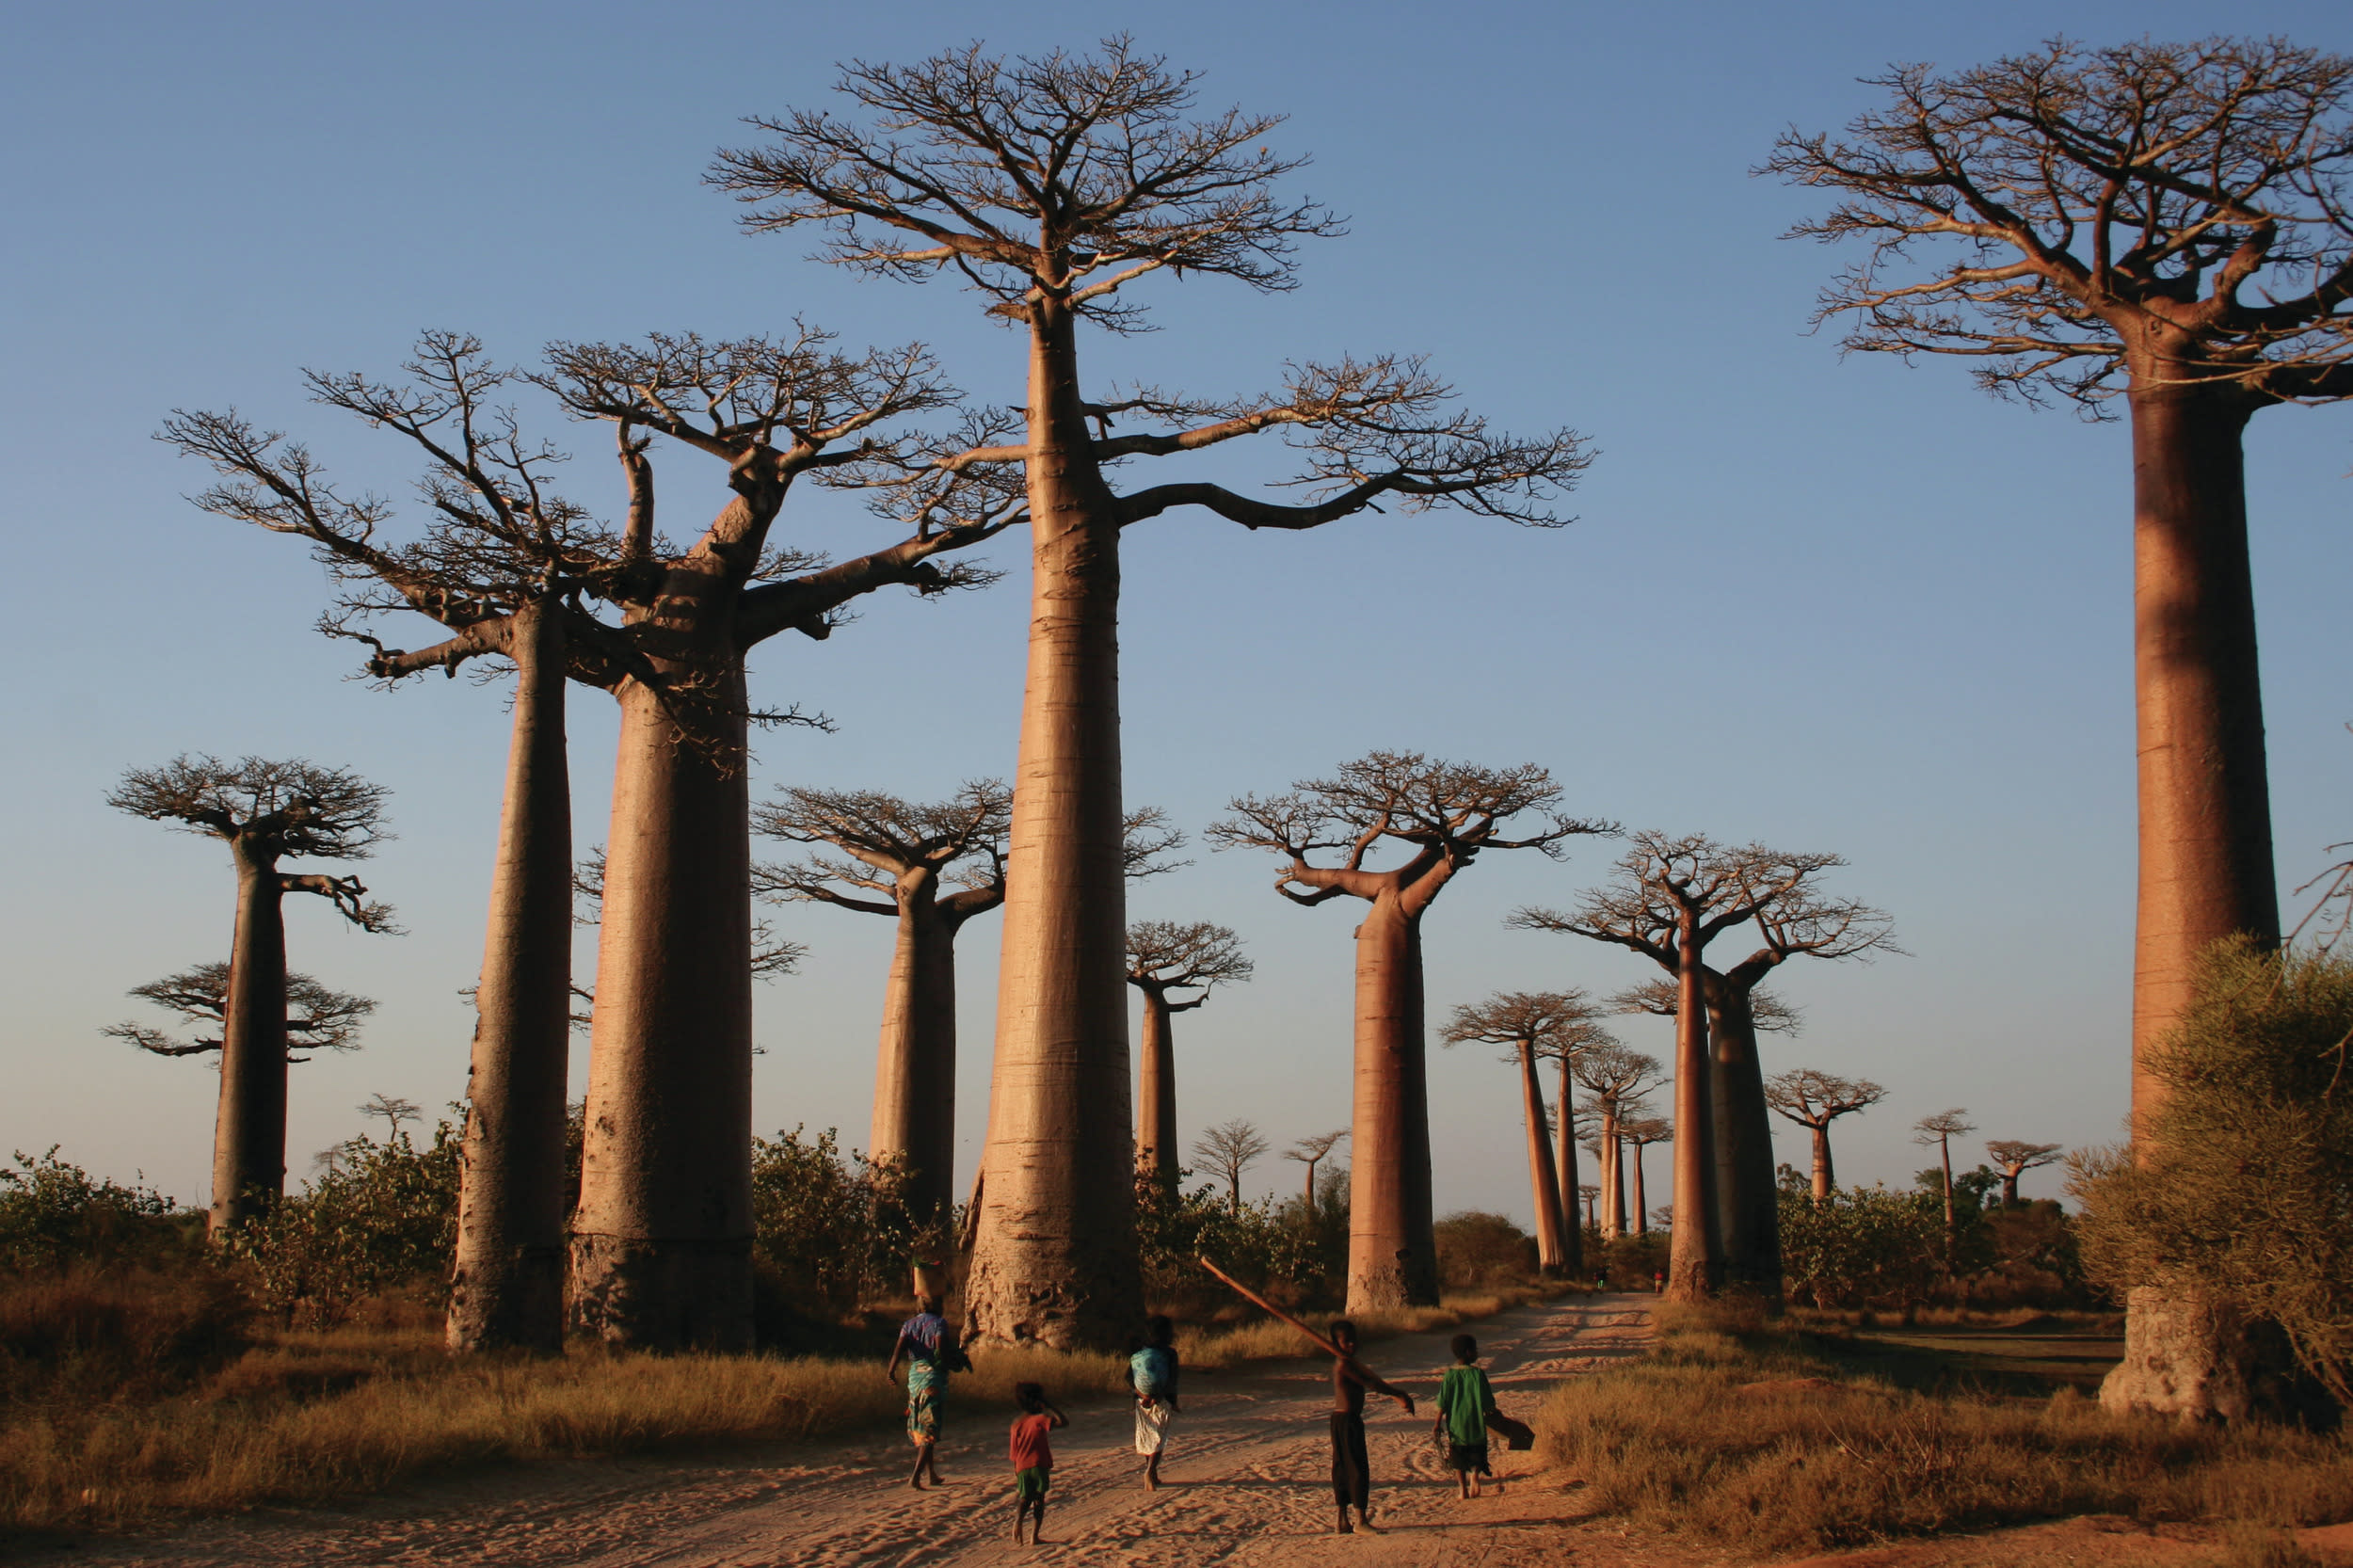 "<p>From ring-tailed lemurs to baobab trees, Madagascar is a biodiversity hotspot: over 80 per cent of its plant and animal species are found nowhere else on Earth. Isolated from Africa millions of years ago, the world's fourth largest island has evolved an incredibly rich ecology and a landscape that is as bizarre as it is unique, making it one of the most exciting destinations in Africa and a world away from the footie this summer. World Expeditions offers an 11-day <a href=""http://www.worldexpeditions.com/uk/index.php?section=trips&id=133658"" target=""_blank"">Unique Madagascar</a> holiday departing on 11 June and 9 July, from £1,390 per person.</p>"